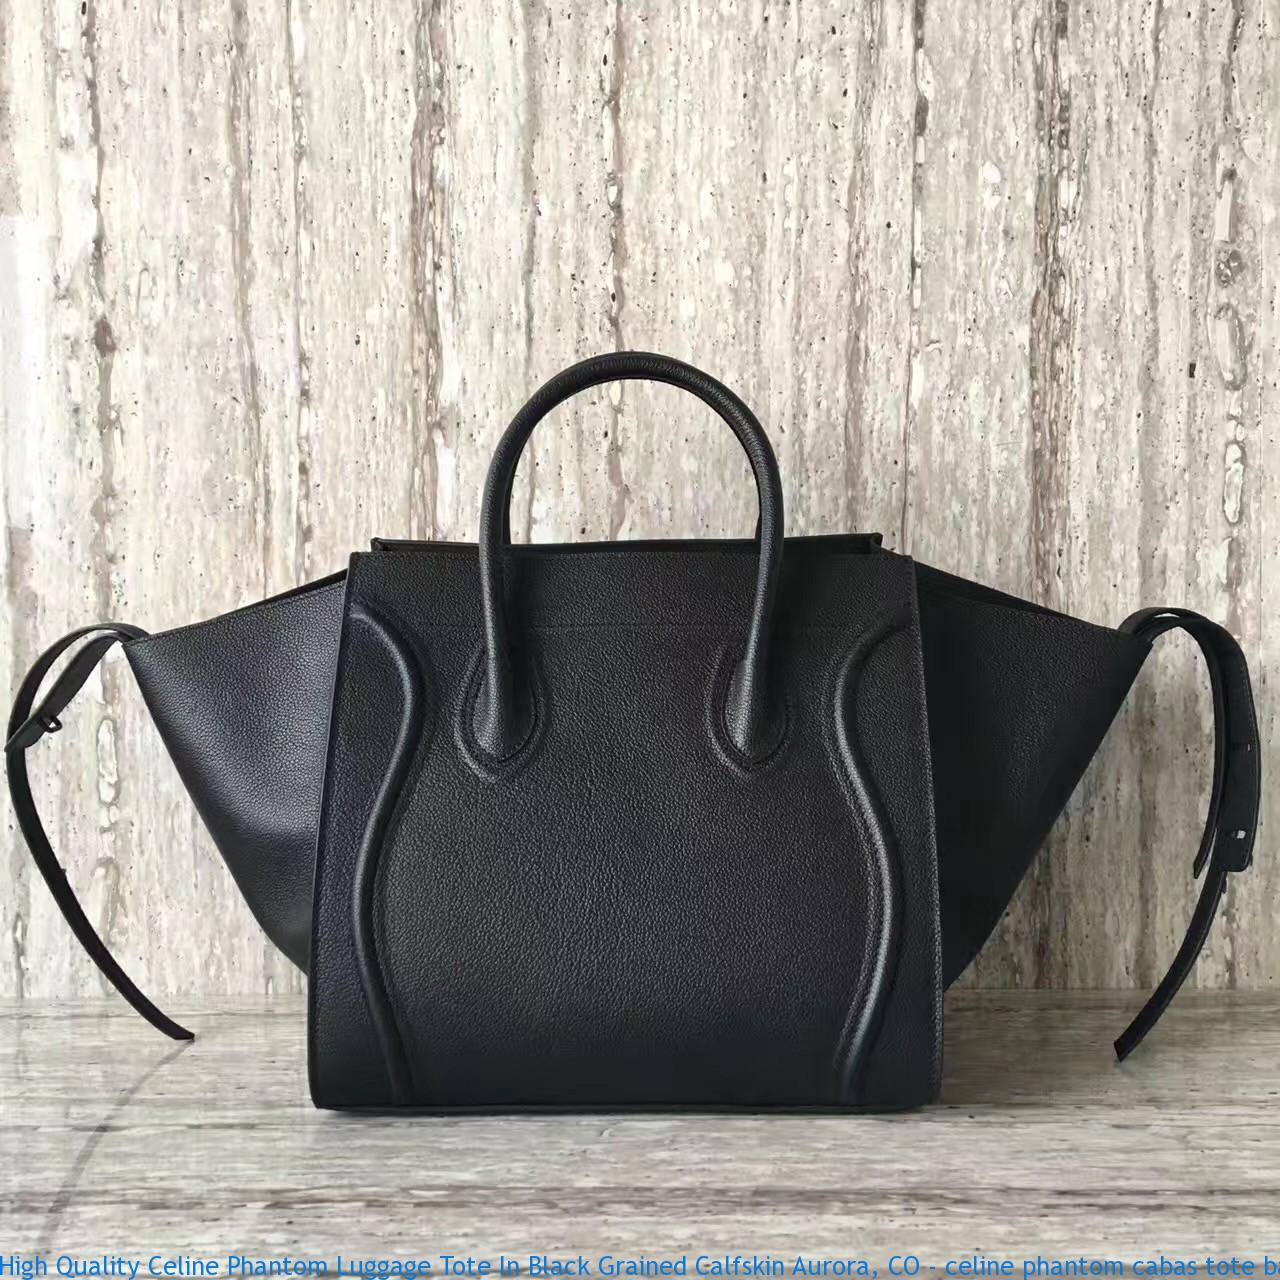 High Quality Celine Phantom Luggage Tote In Black Grained